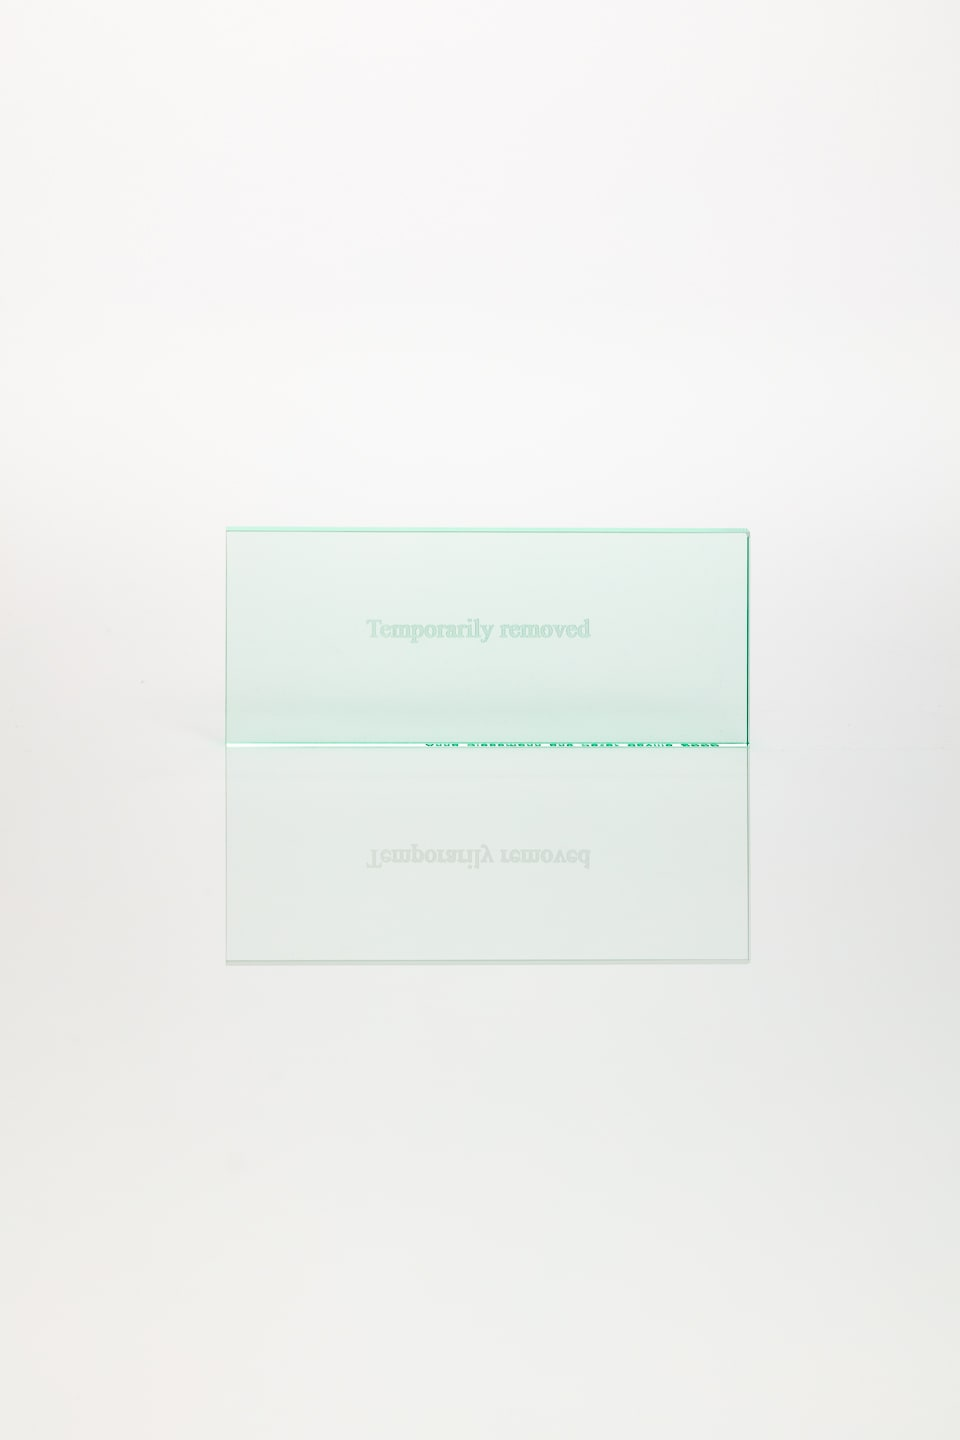 Anna Blessmann and Peter Saville Temporarily Removed, 2008 Green tinted clear acrylic, engraved text. Accompanied by a signed certificate. 5 x 12 x 0.3 cm Edition of 10